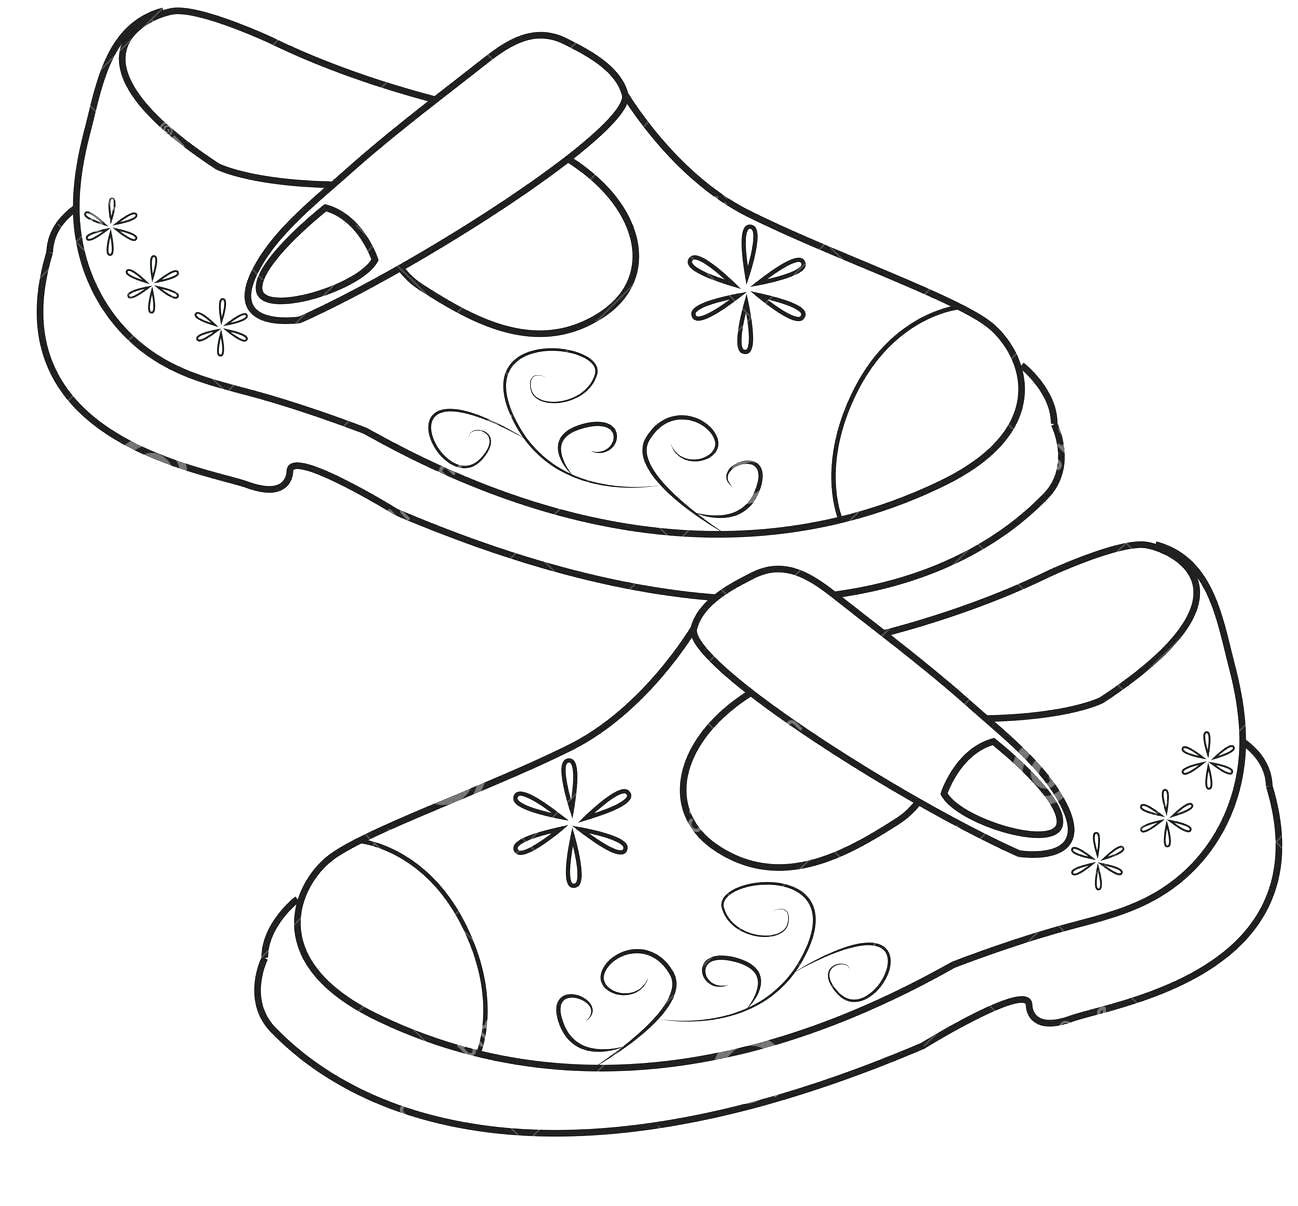 images of shoes to color basketball shoe coloring pages download and print for free color images to shoes of